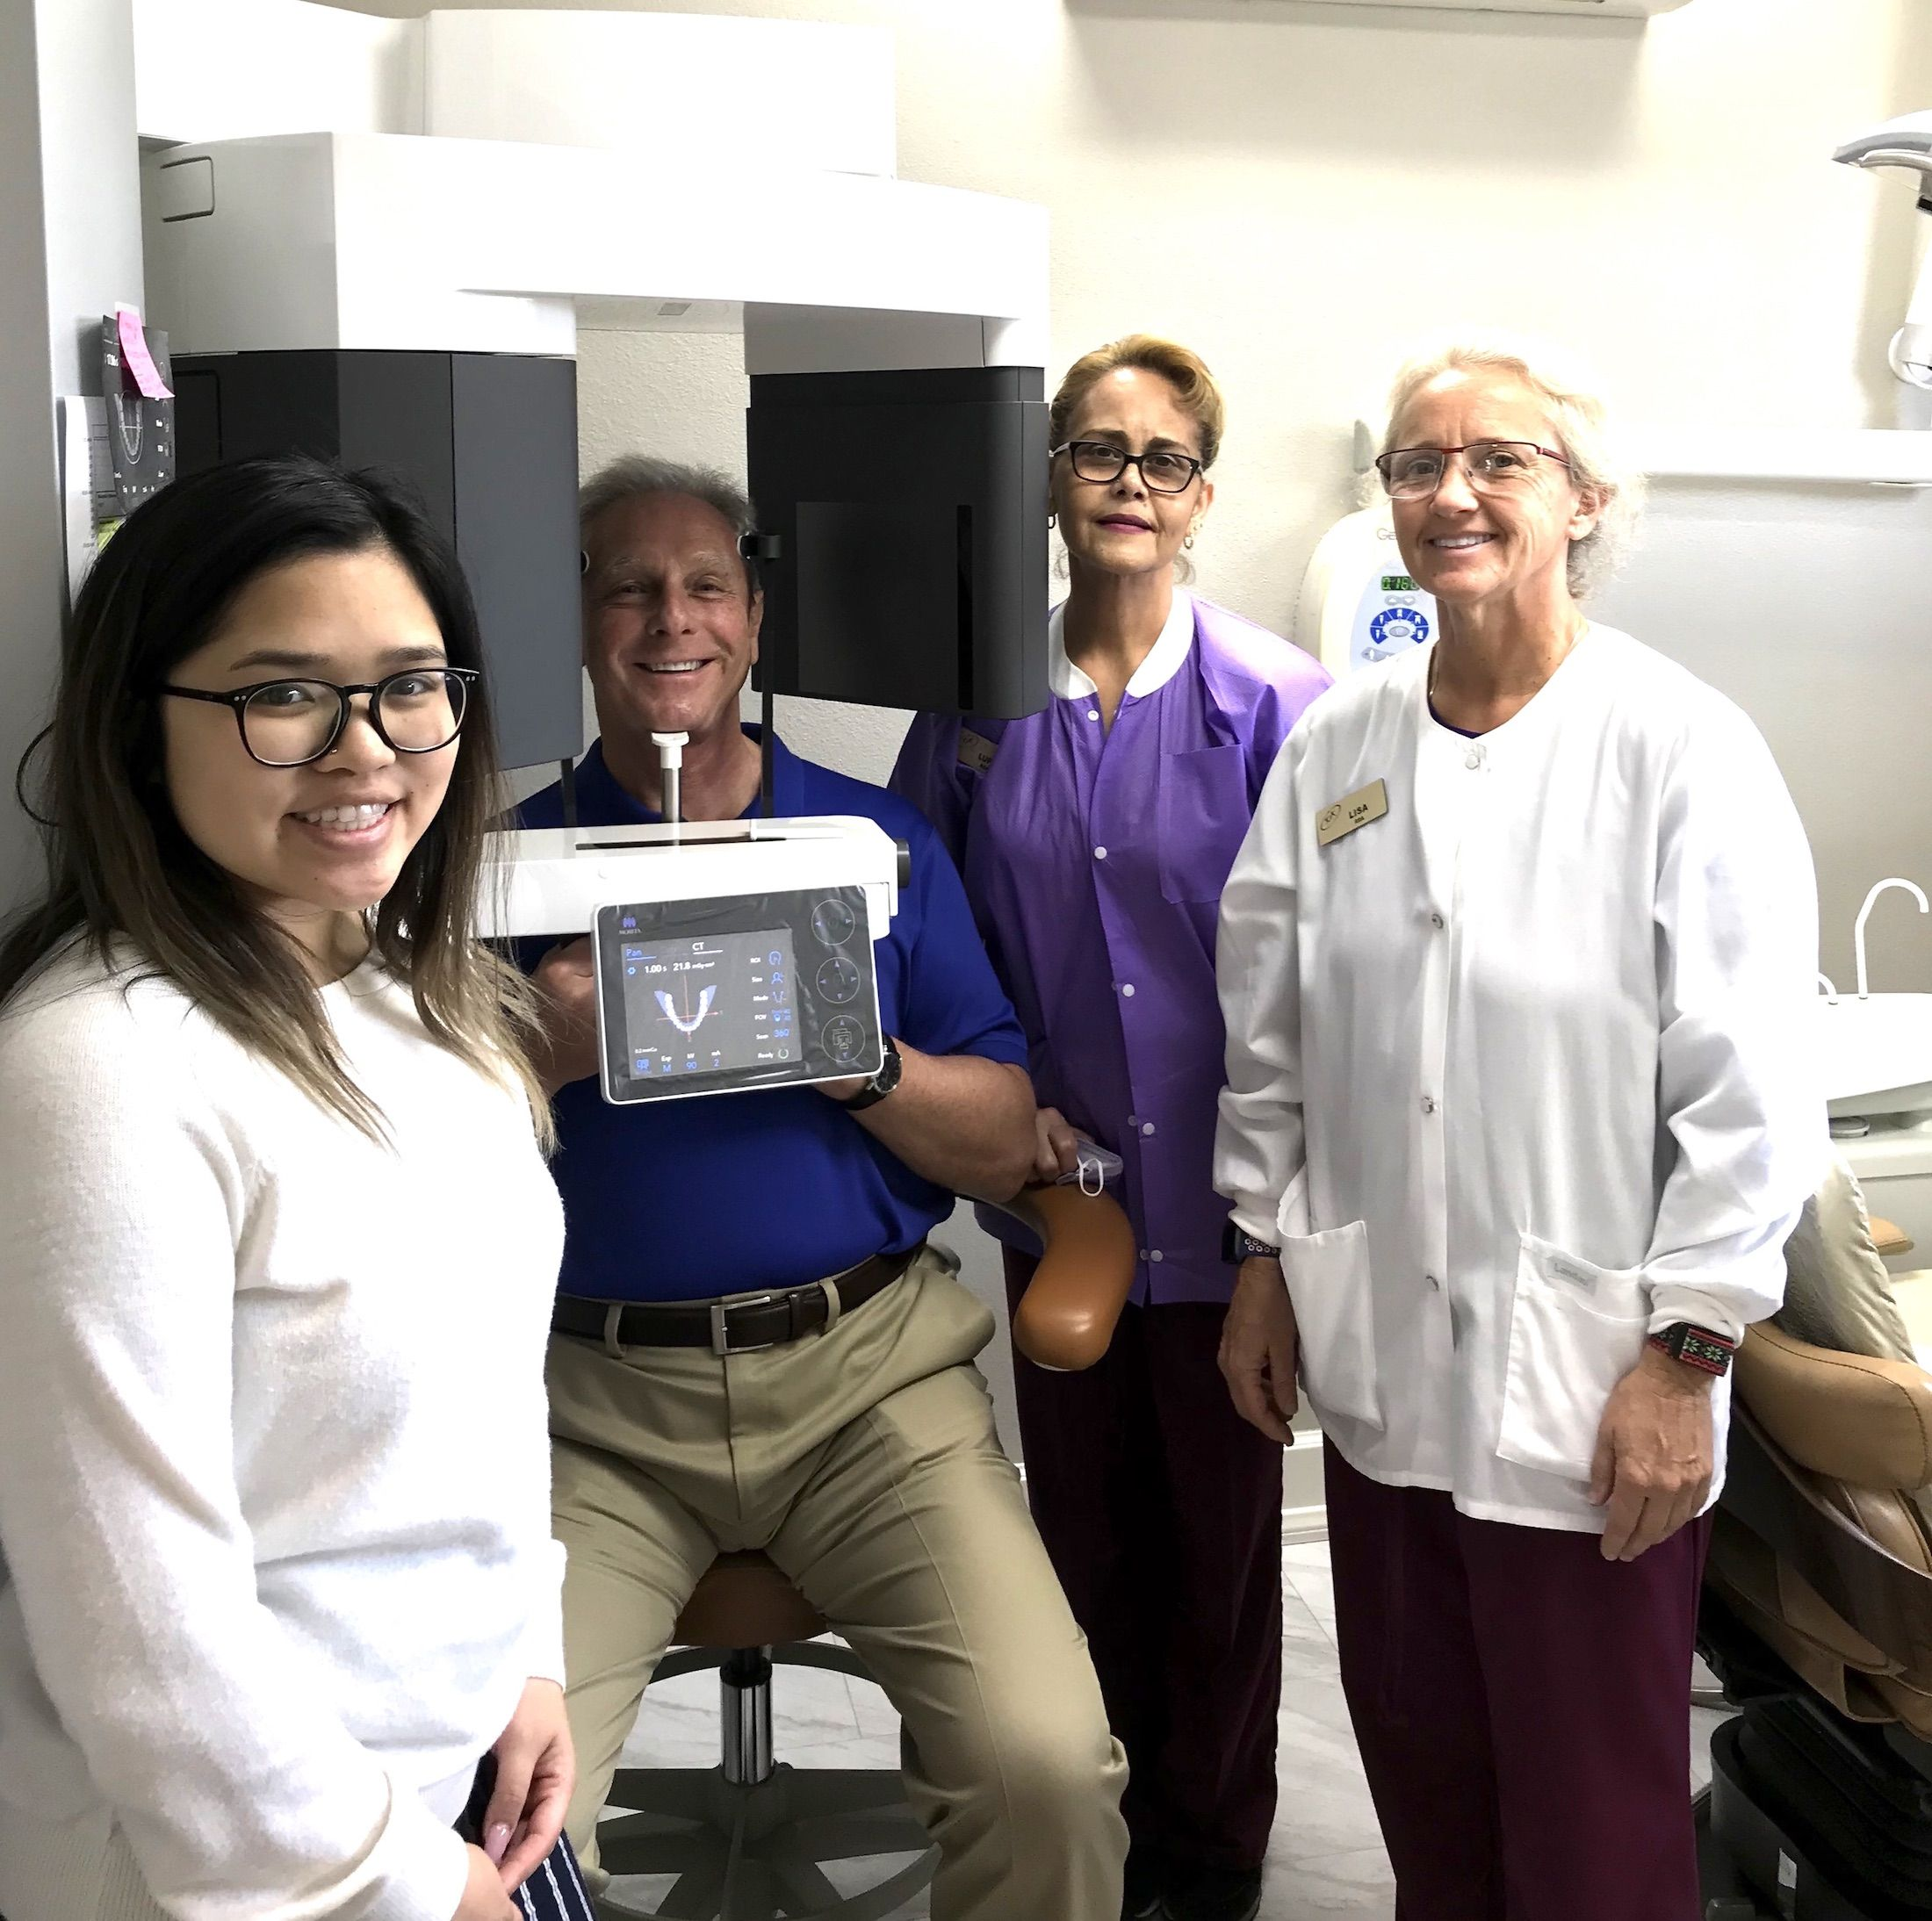 Dr. Kepic, second from left, with team members, showing 3D x-ray machine